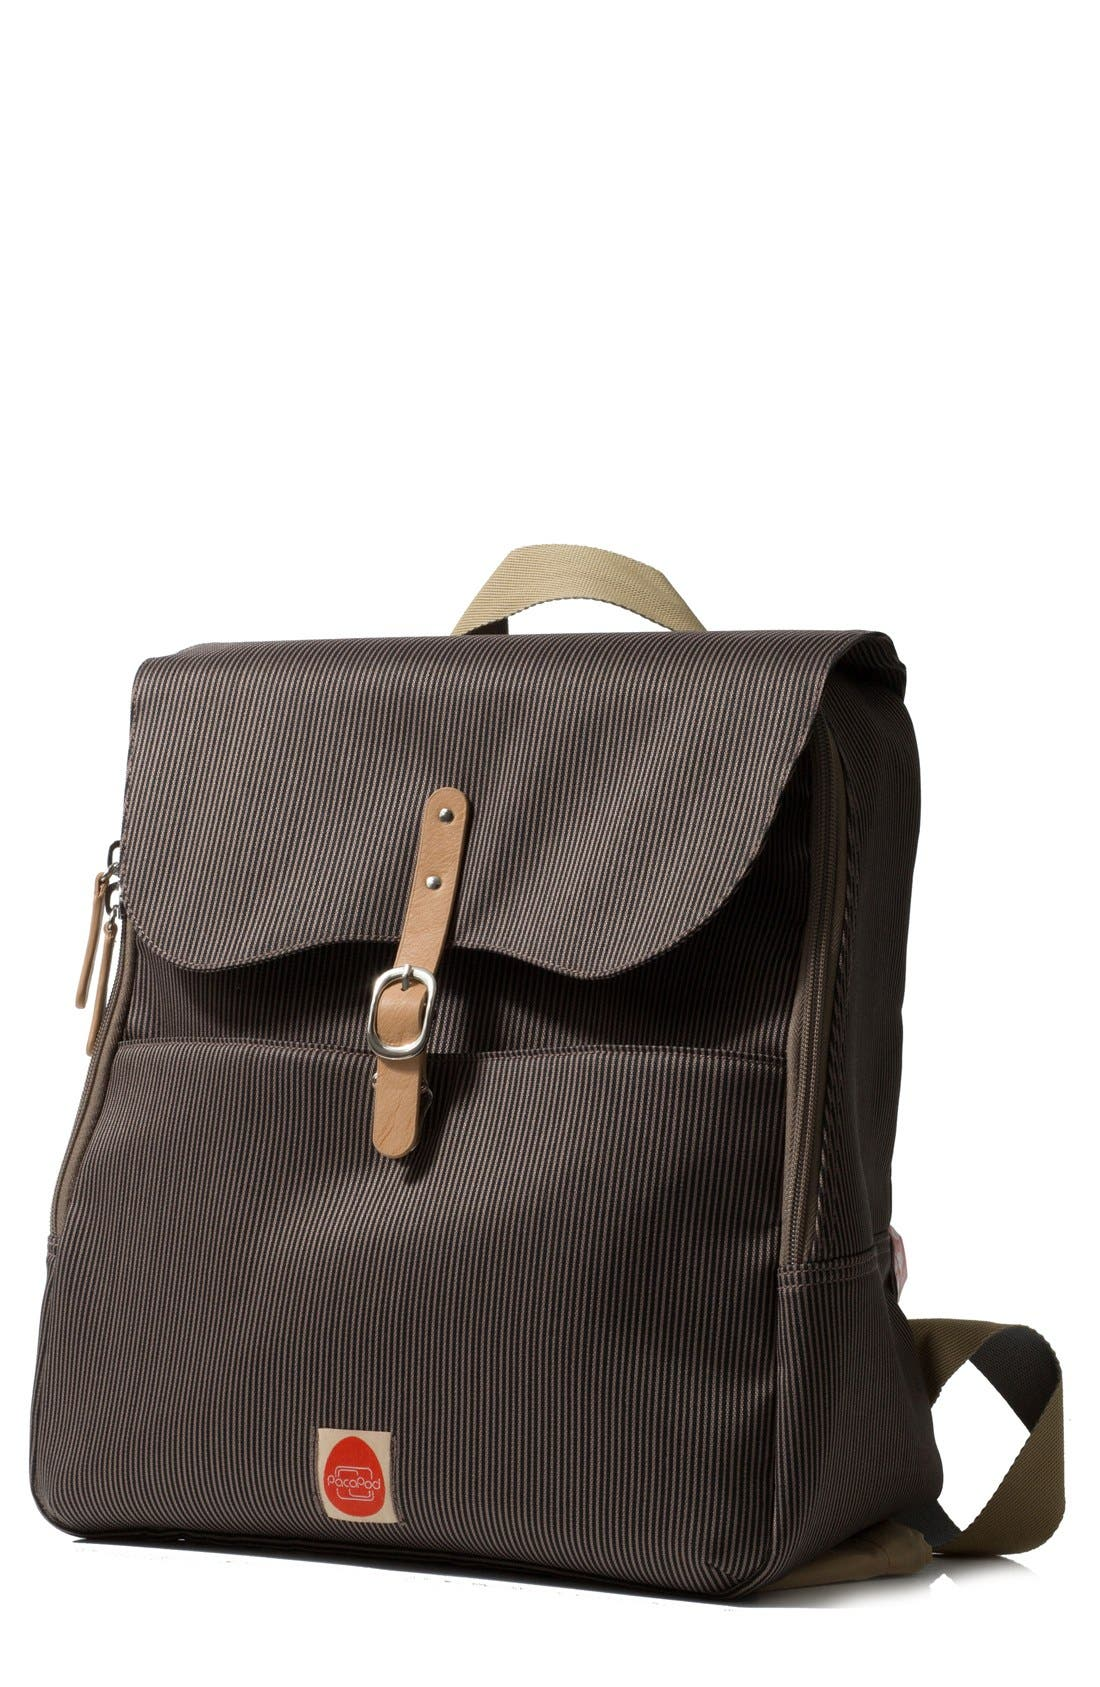 'Hastings' Diaper Bag,                             Main thumbnail 1, color,                             Mocha